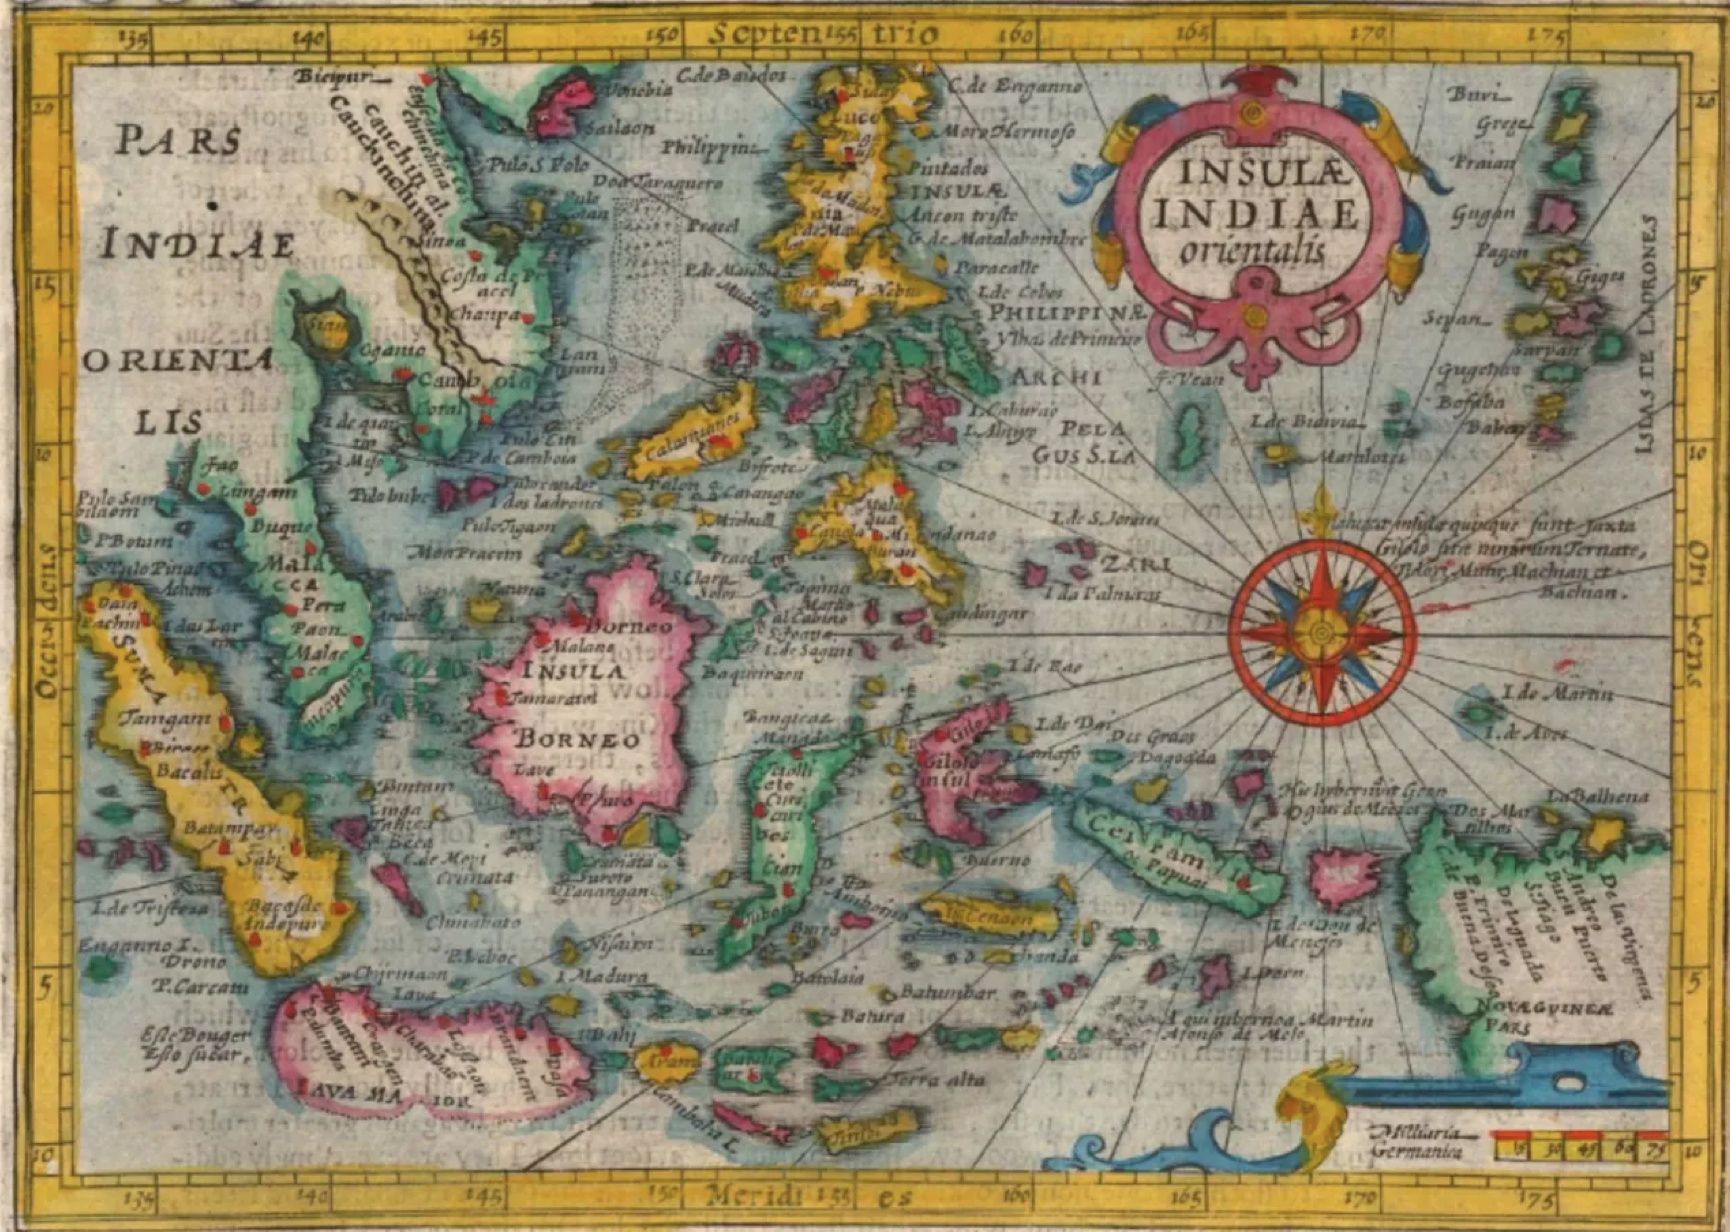 Insulae Indiae Orientalis, 1625, Cartographer. Samuel Purchas, The Map House of London